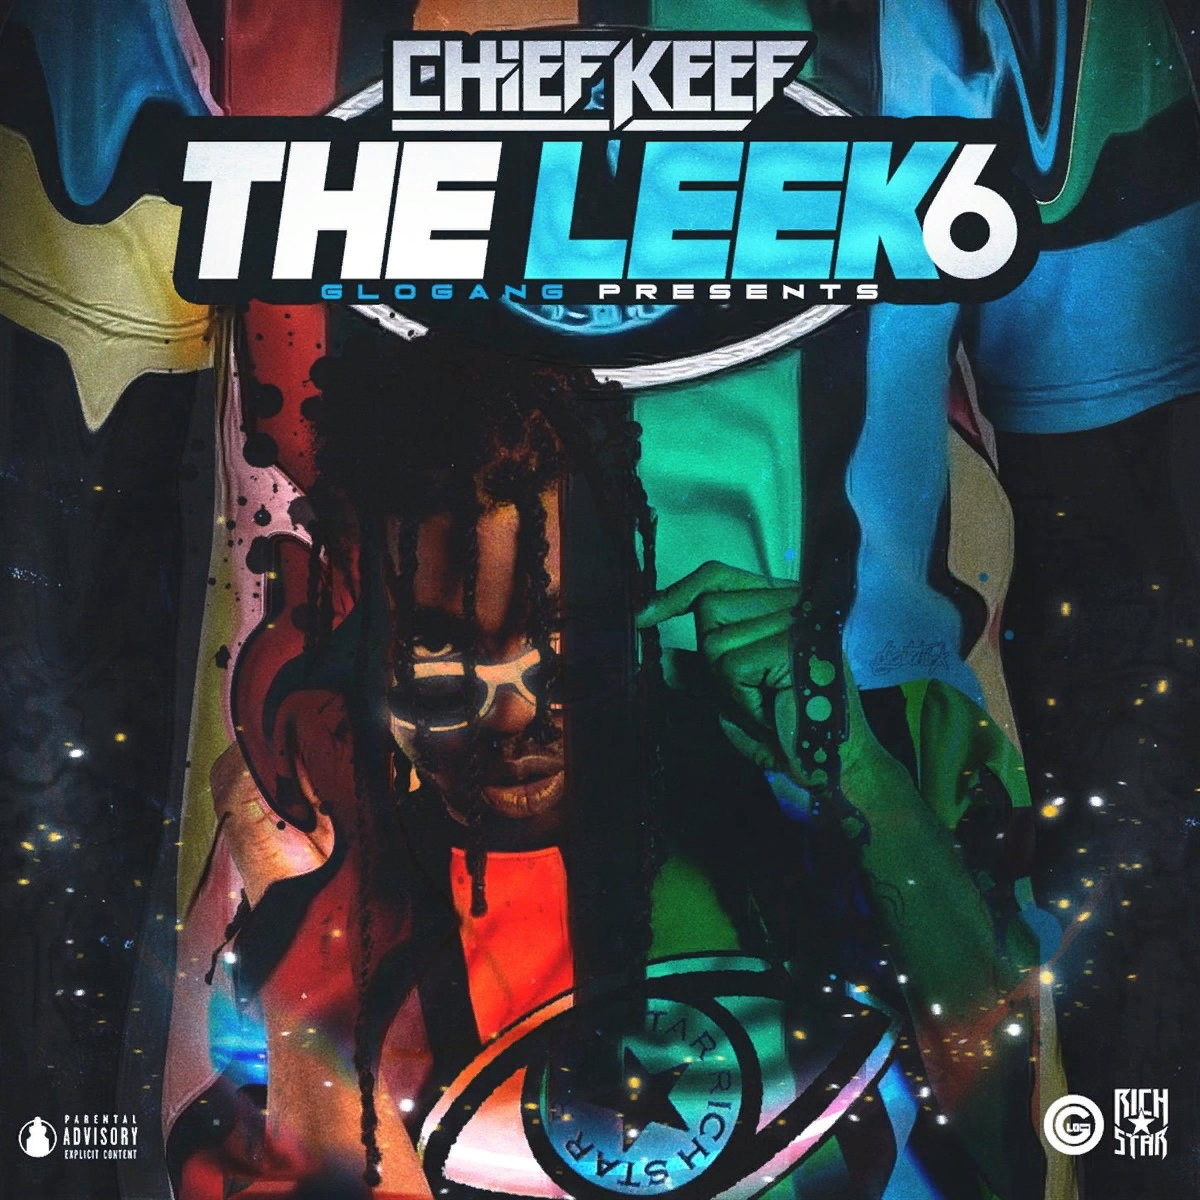 Chief Keef – The Leek 6